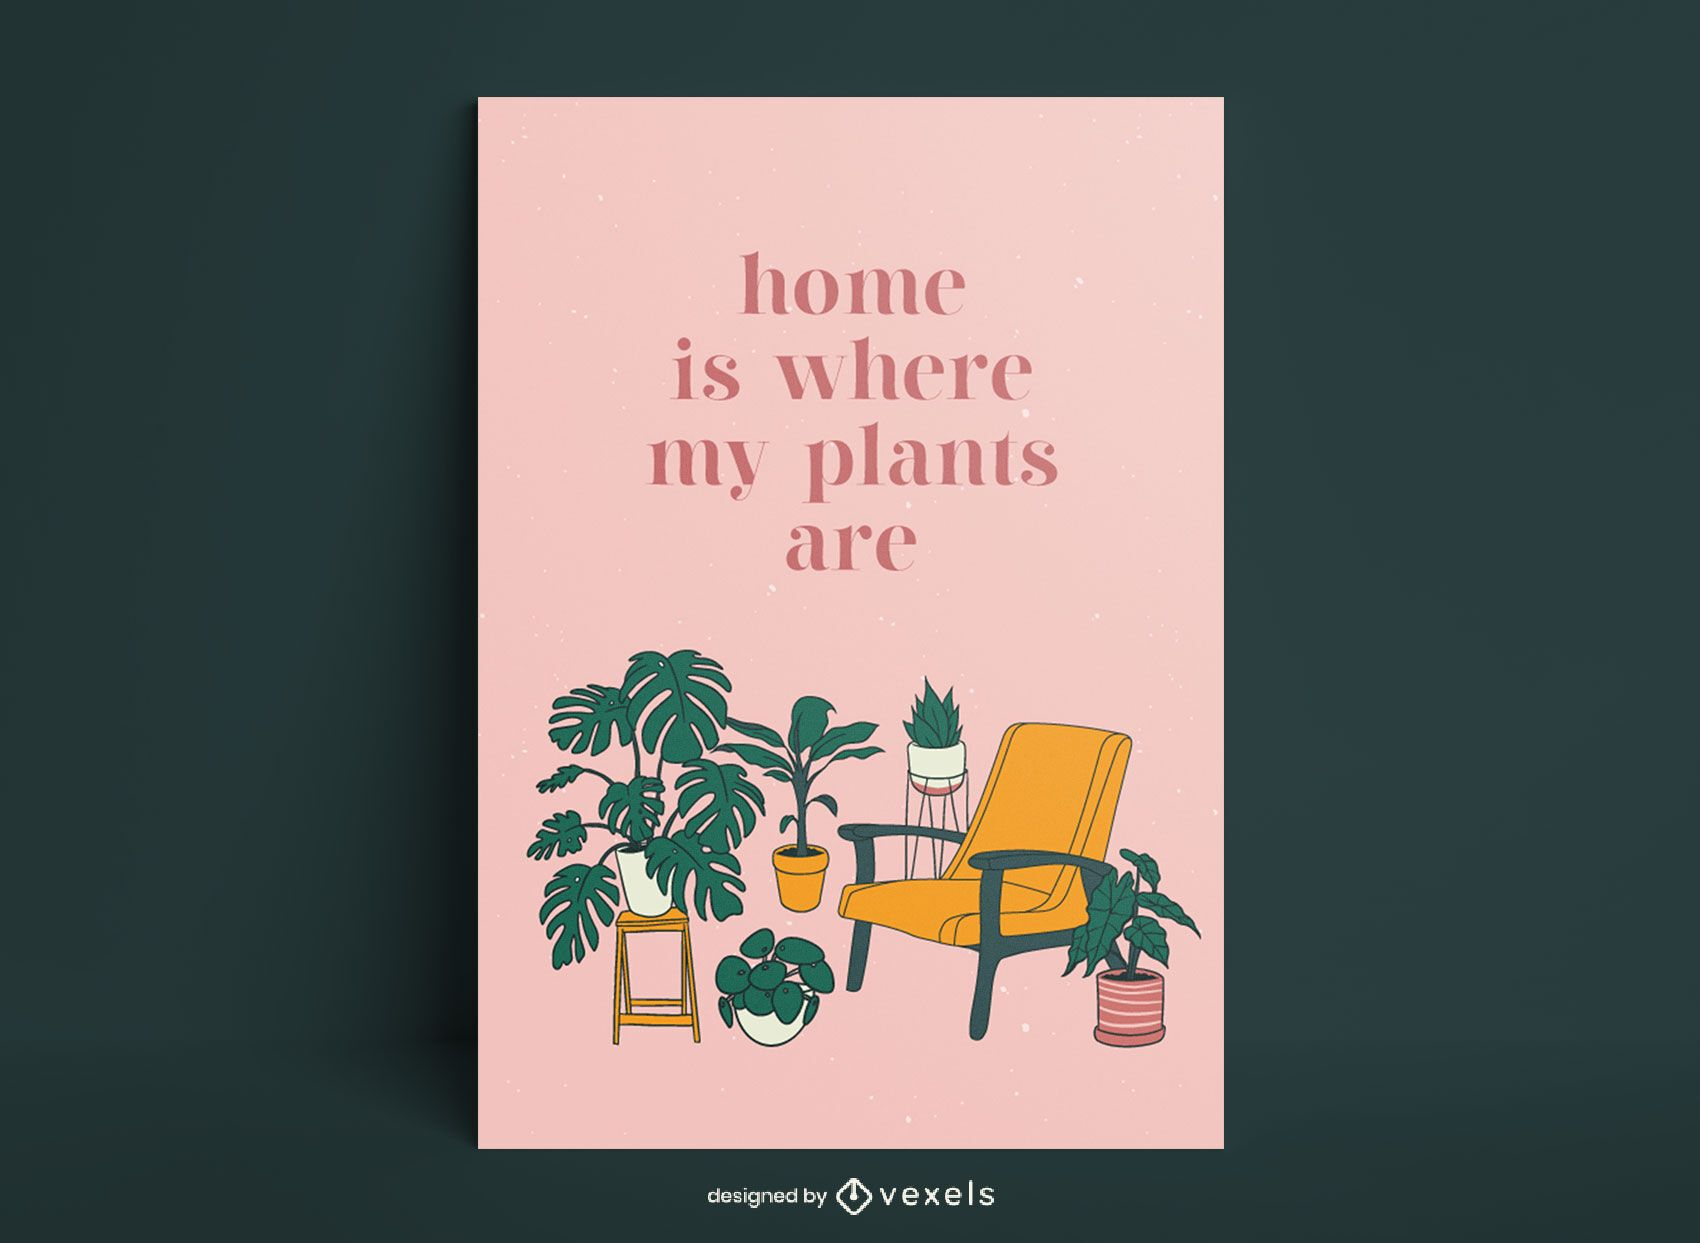 Home is where my plants are poster design